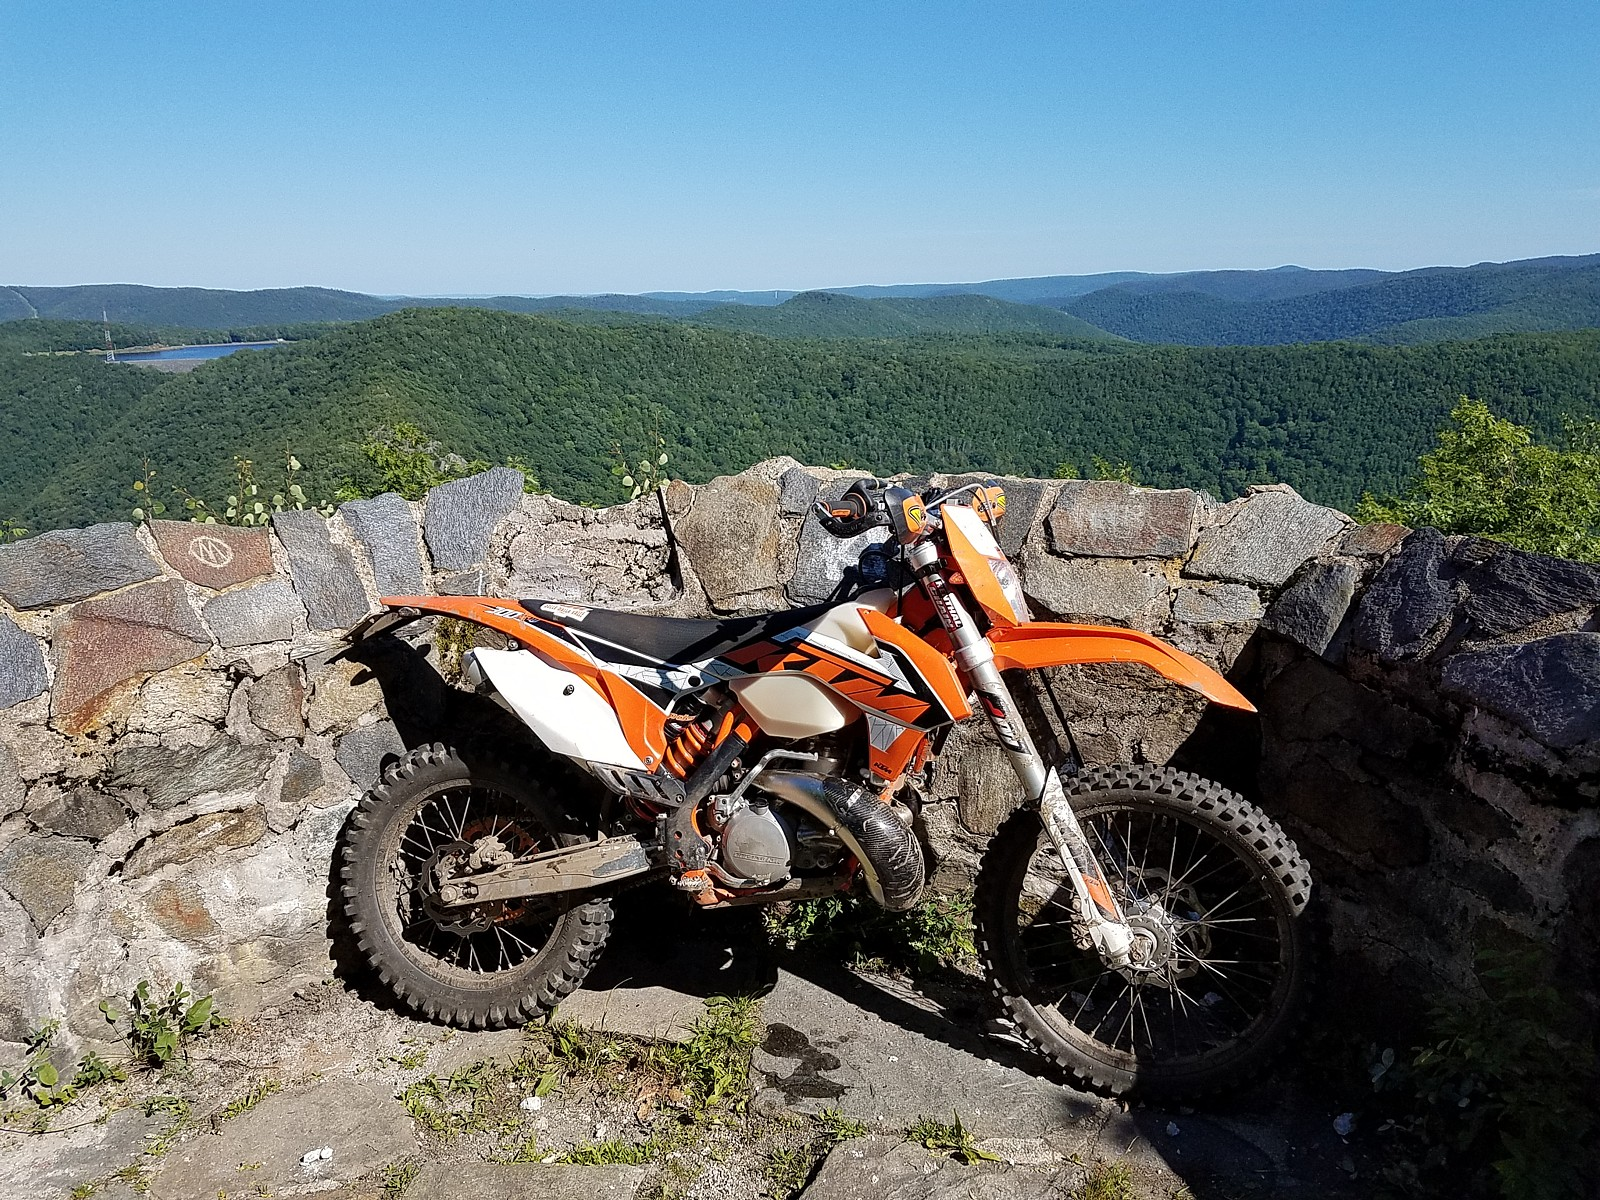 Favorite ride view - WormDrive413 - Motocross Pictures - Vital MX